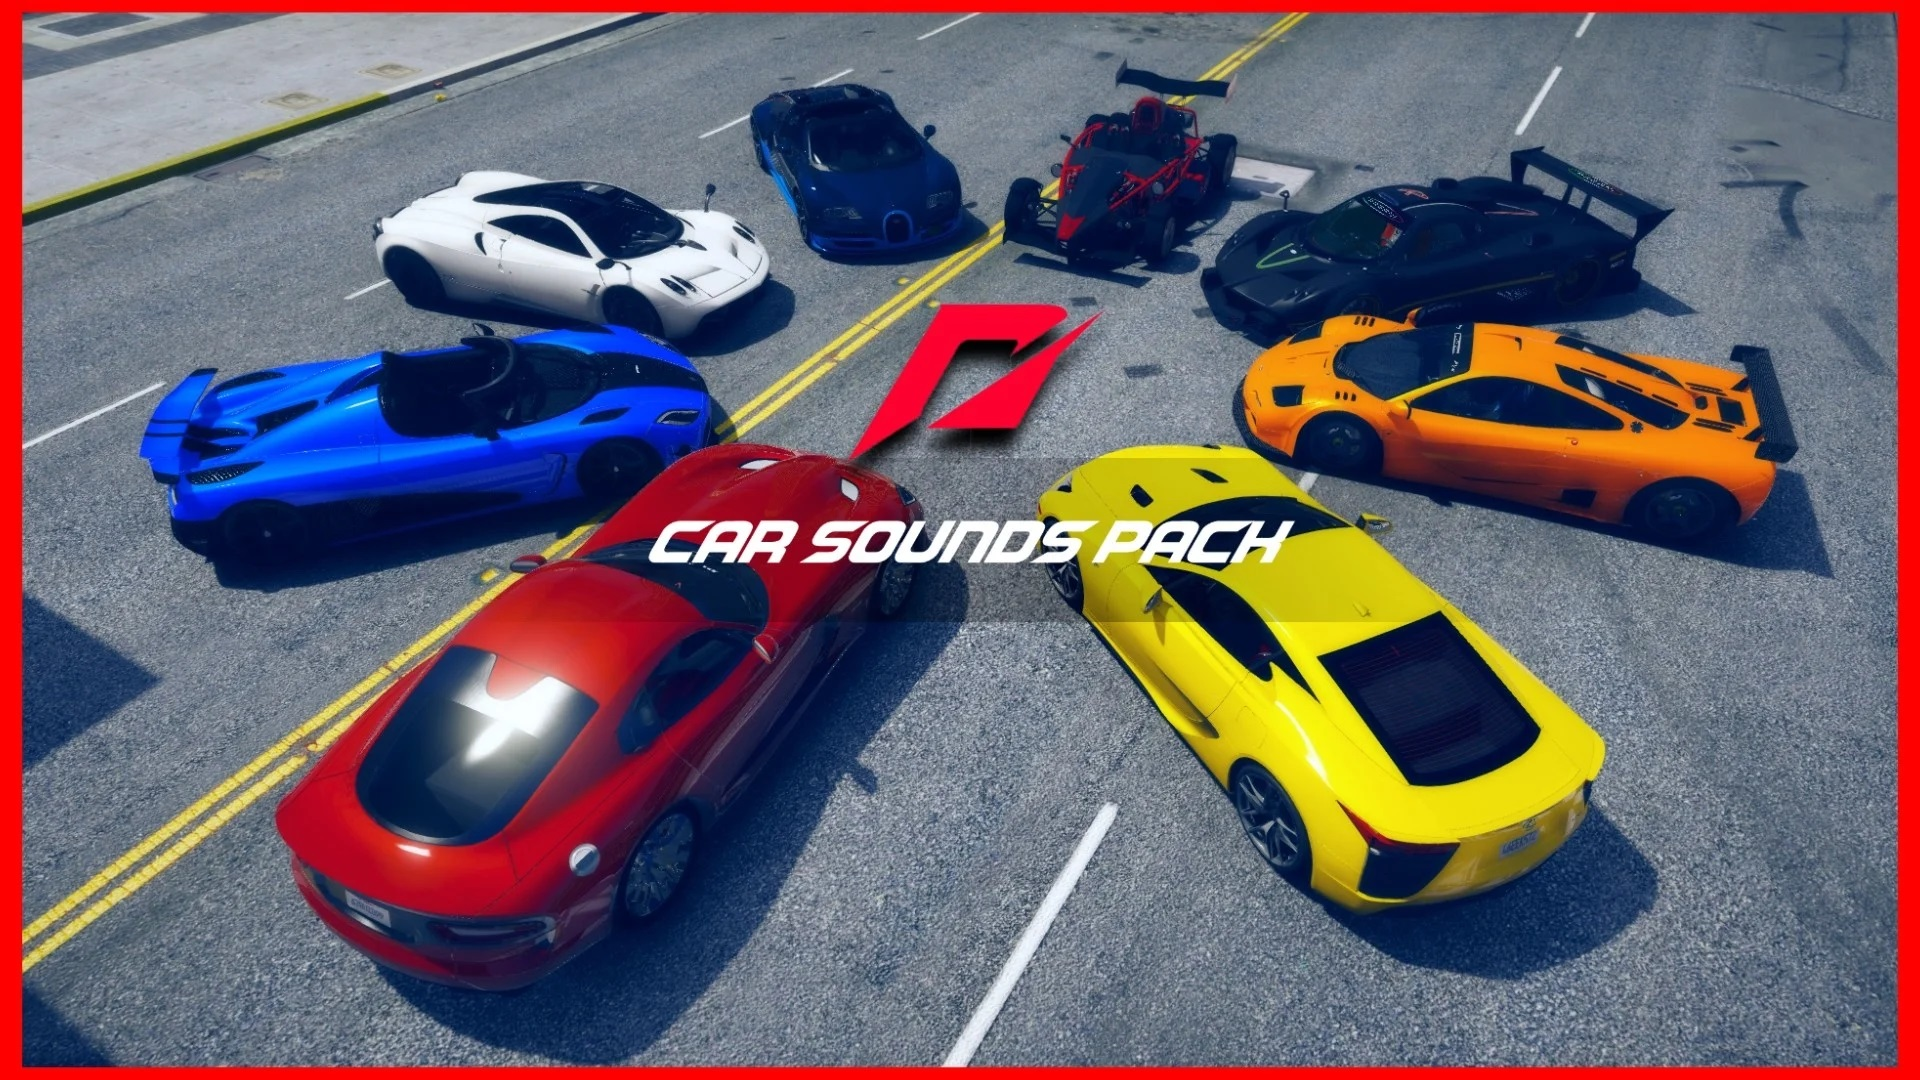 The Ultimate Need for Speed Car Sounds Pack 1.0